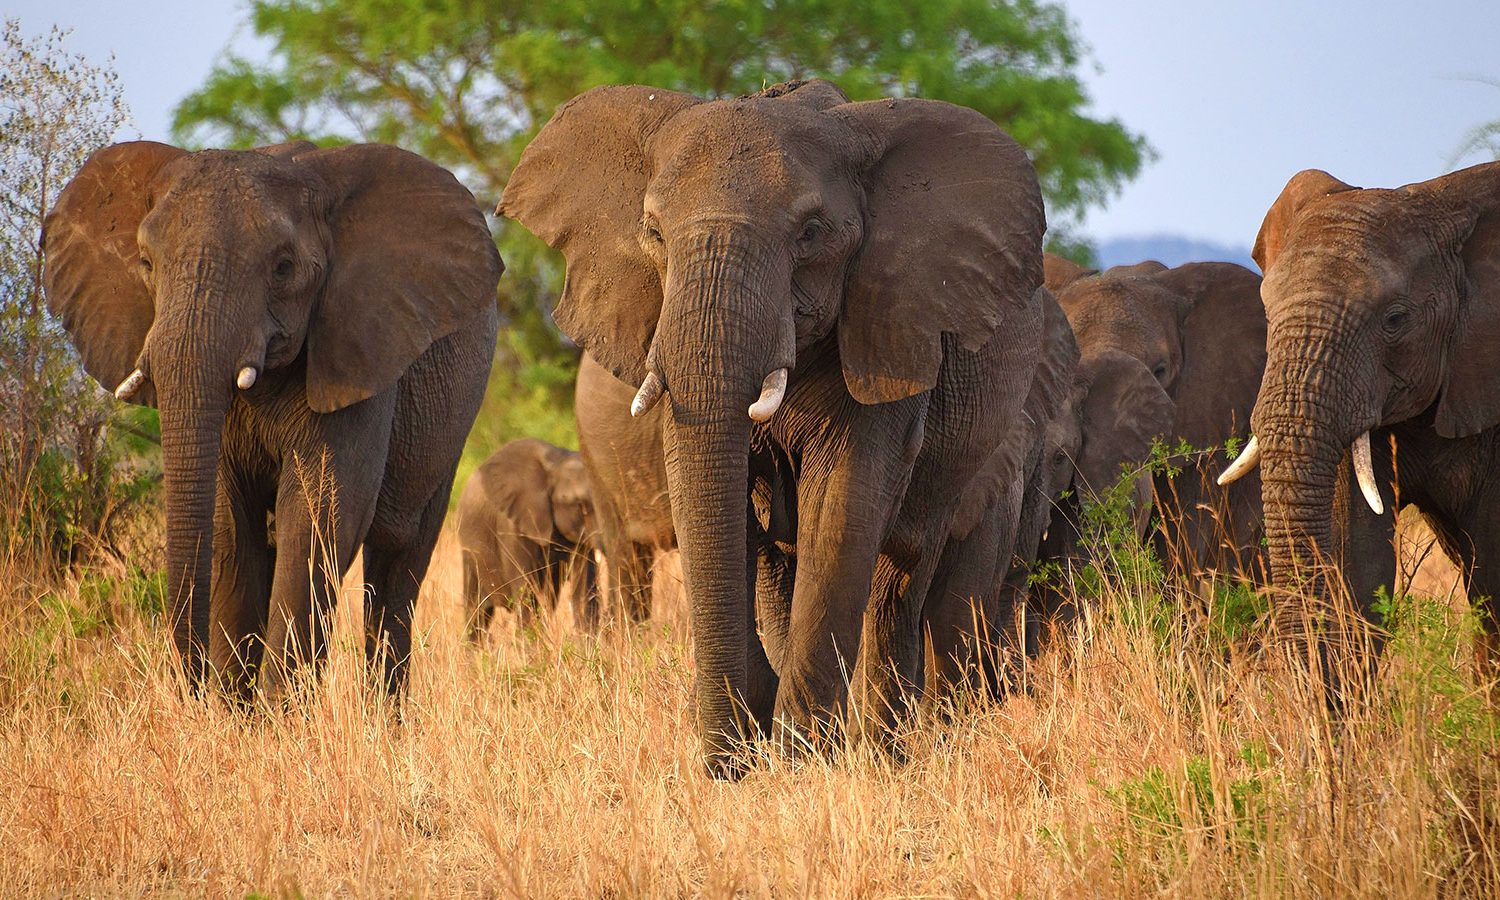 kidepo valley national park Destinations Trips Africa Big Five